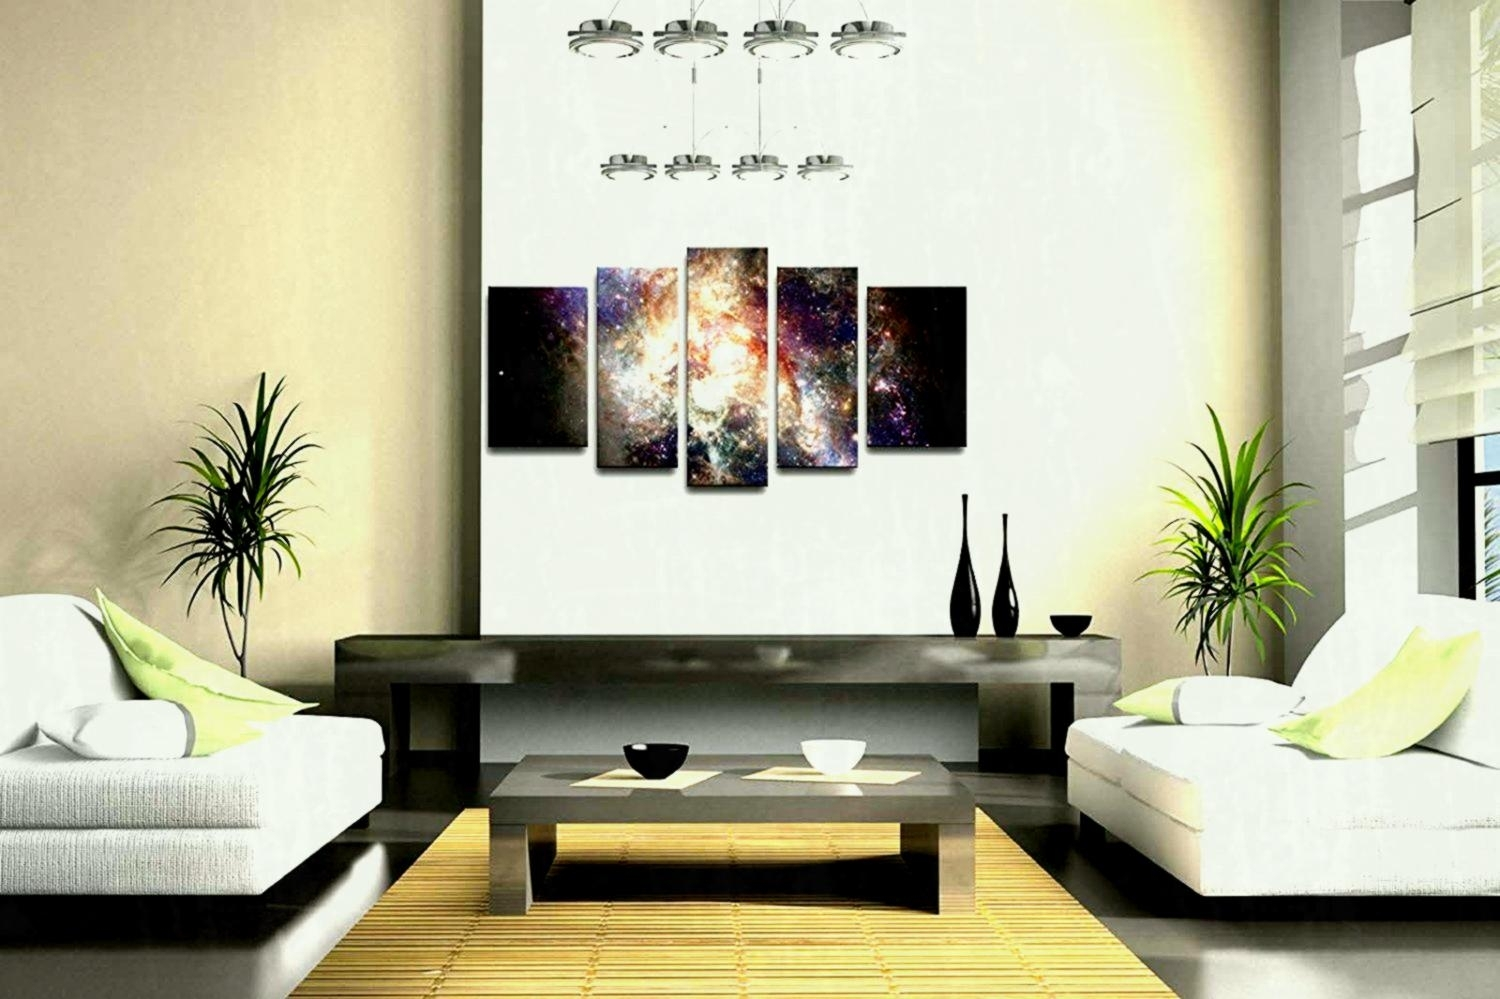 Living Room Artwork Modern Wall Art Decors Designs Images Decoration inside Modern Wall Art Decors (Image 7 of 20)